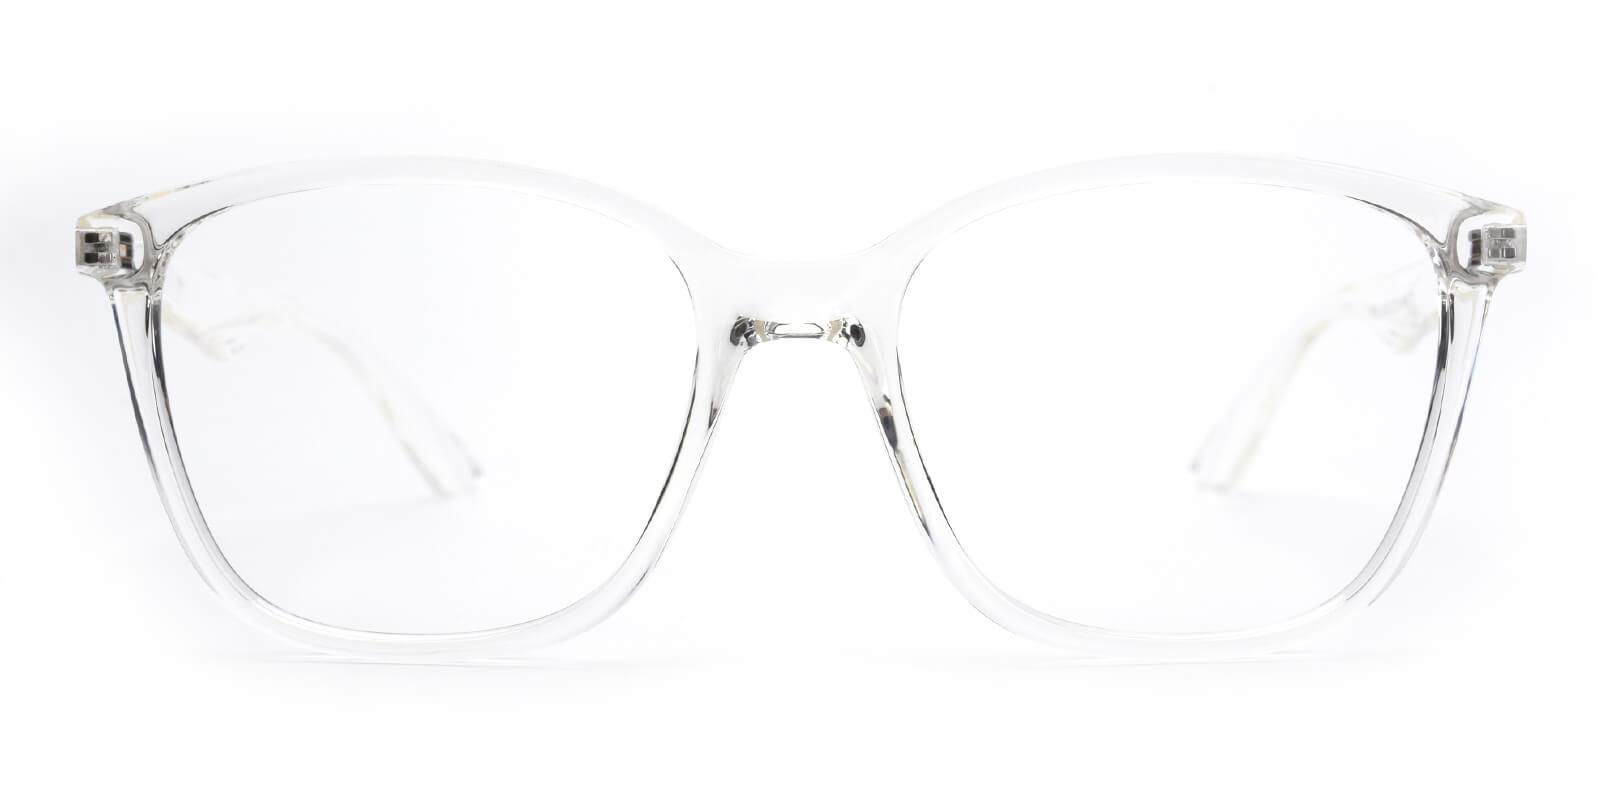 Jason-Translucent-Square-TR-Eyeglasses-detail